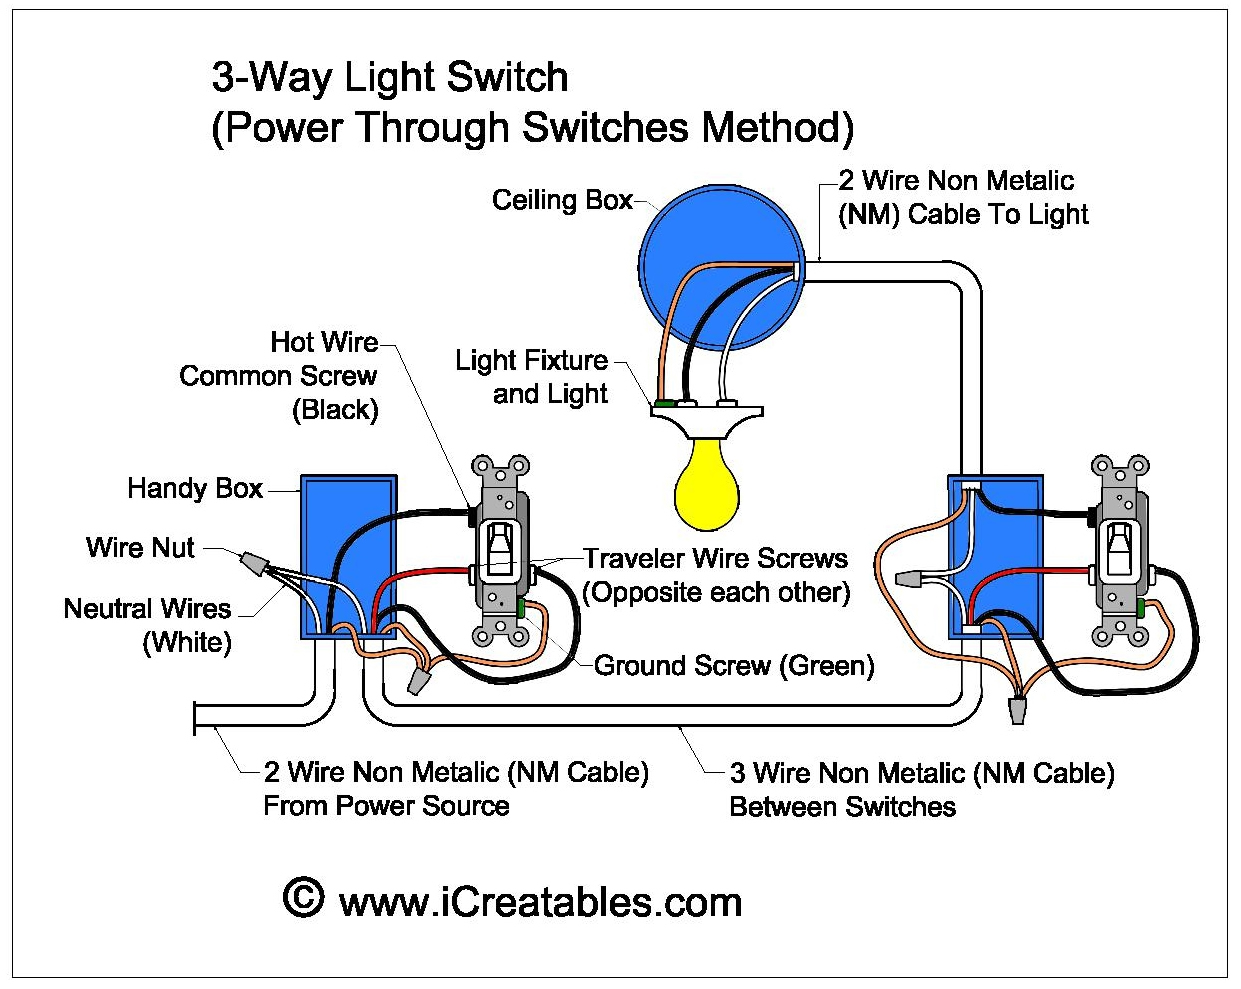 hight resolution of how to wire 2 way light switch moreover wiring light switches wiring diagram likewise 3 way switch diagram moreover single pole